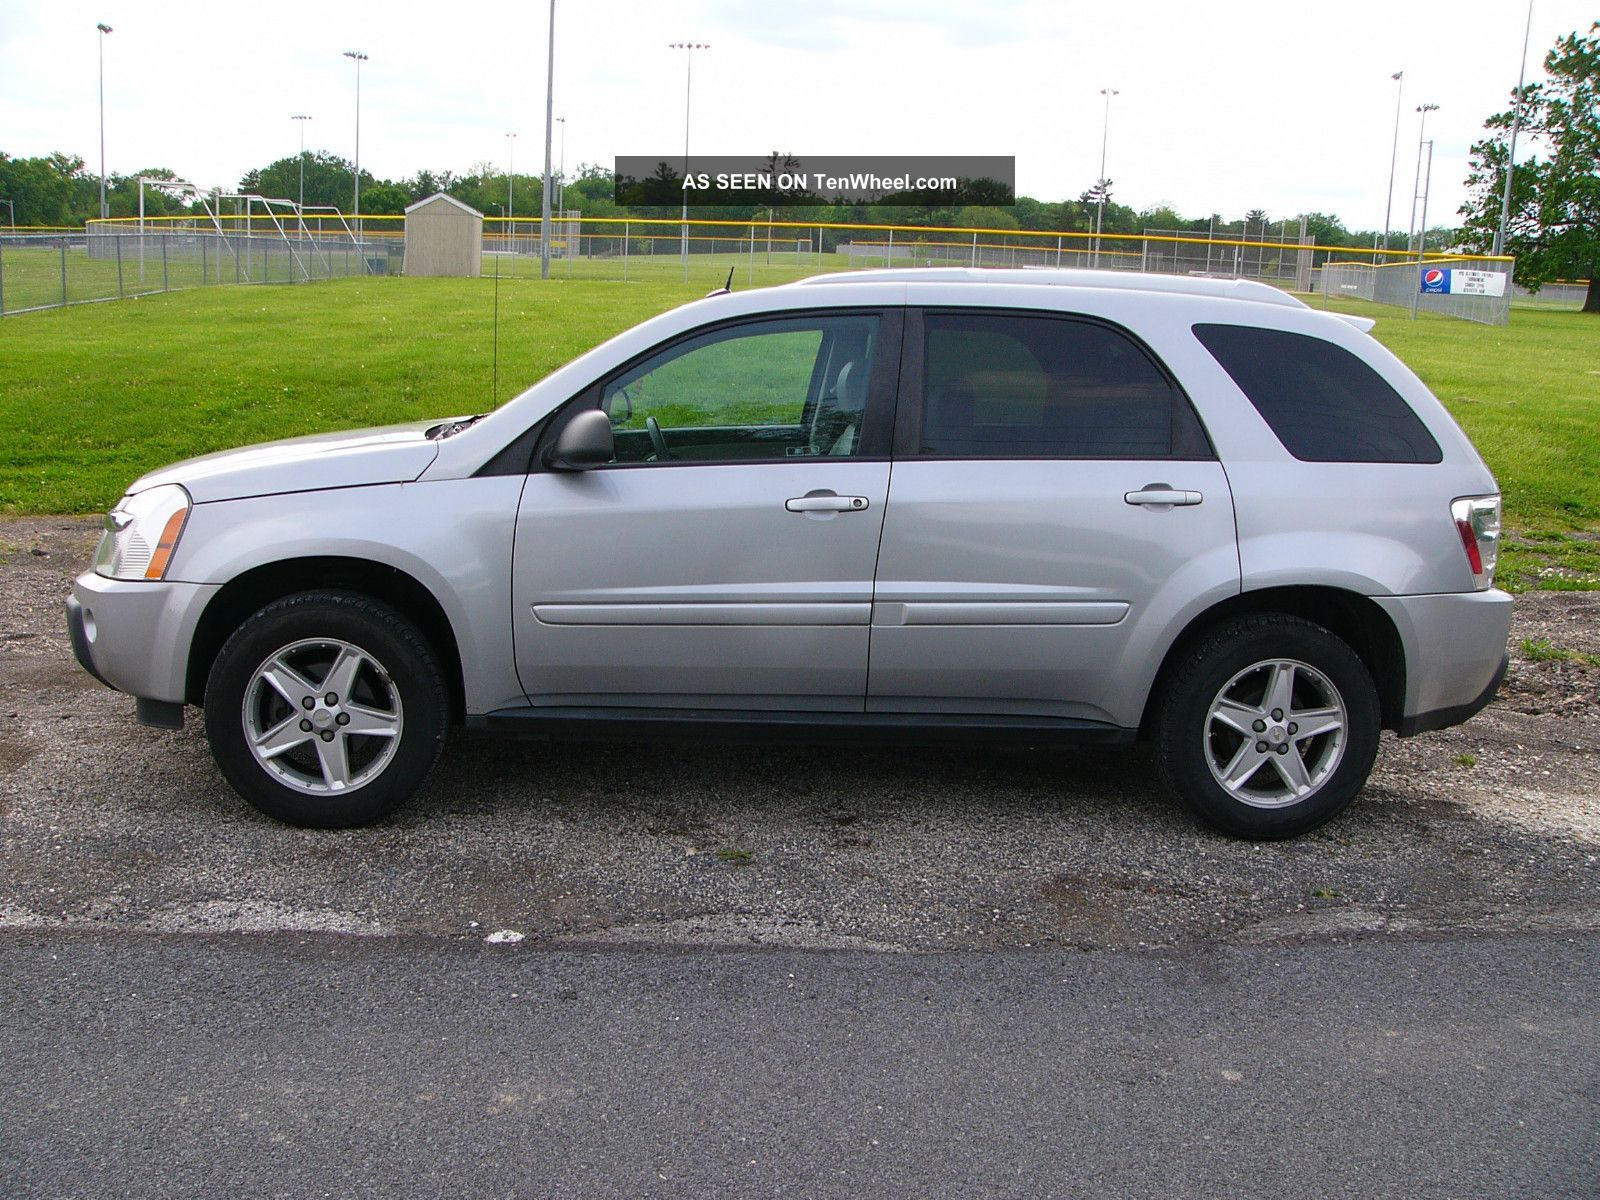 2005 chevrolet equinox – pictures, information and specs - auto